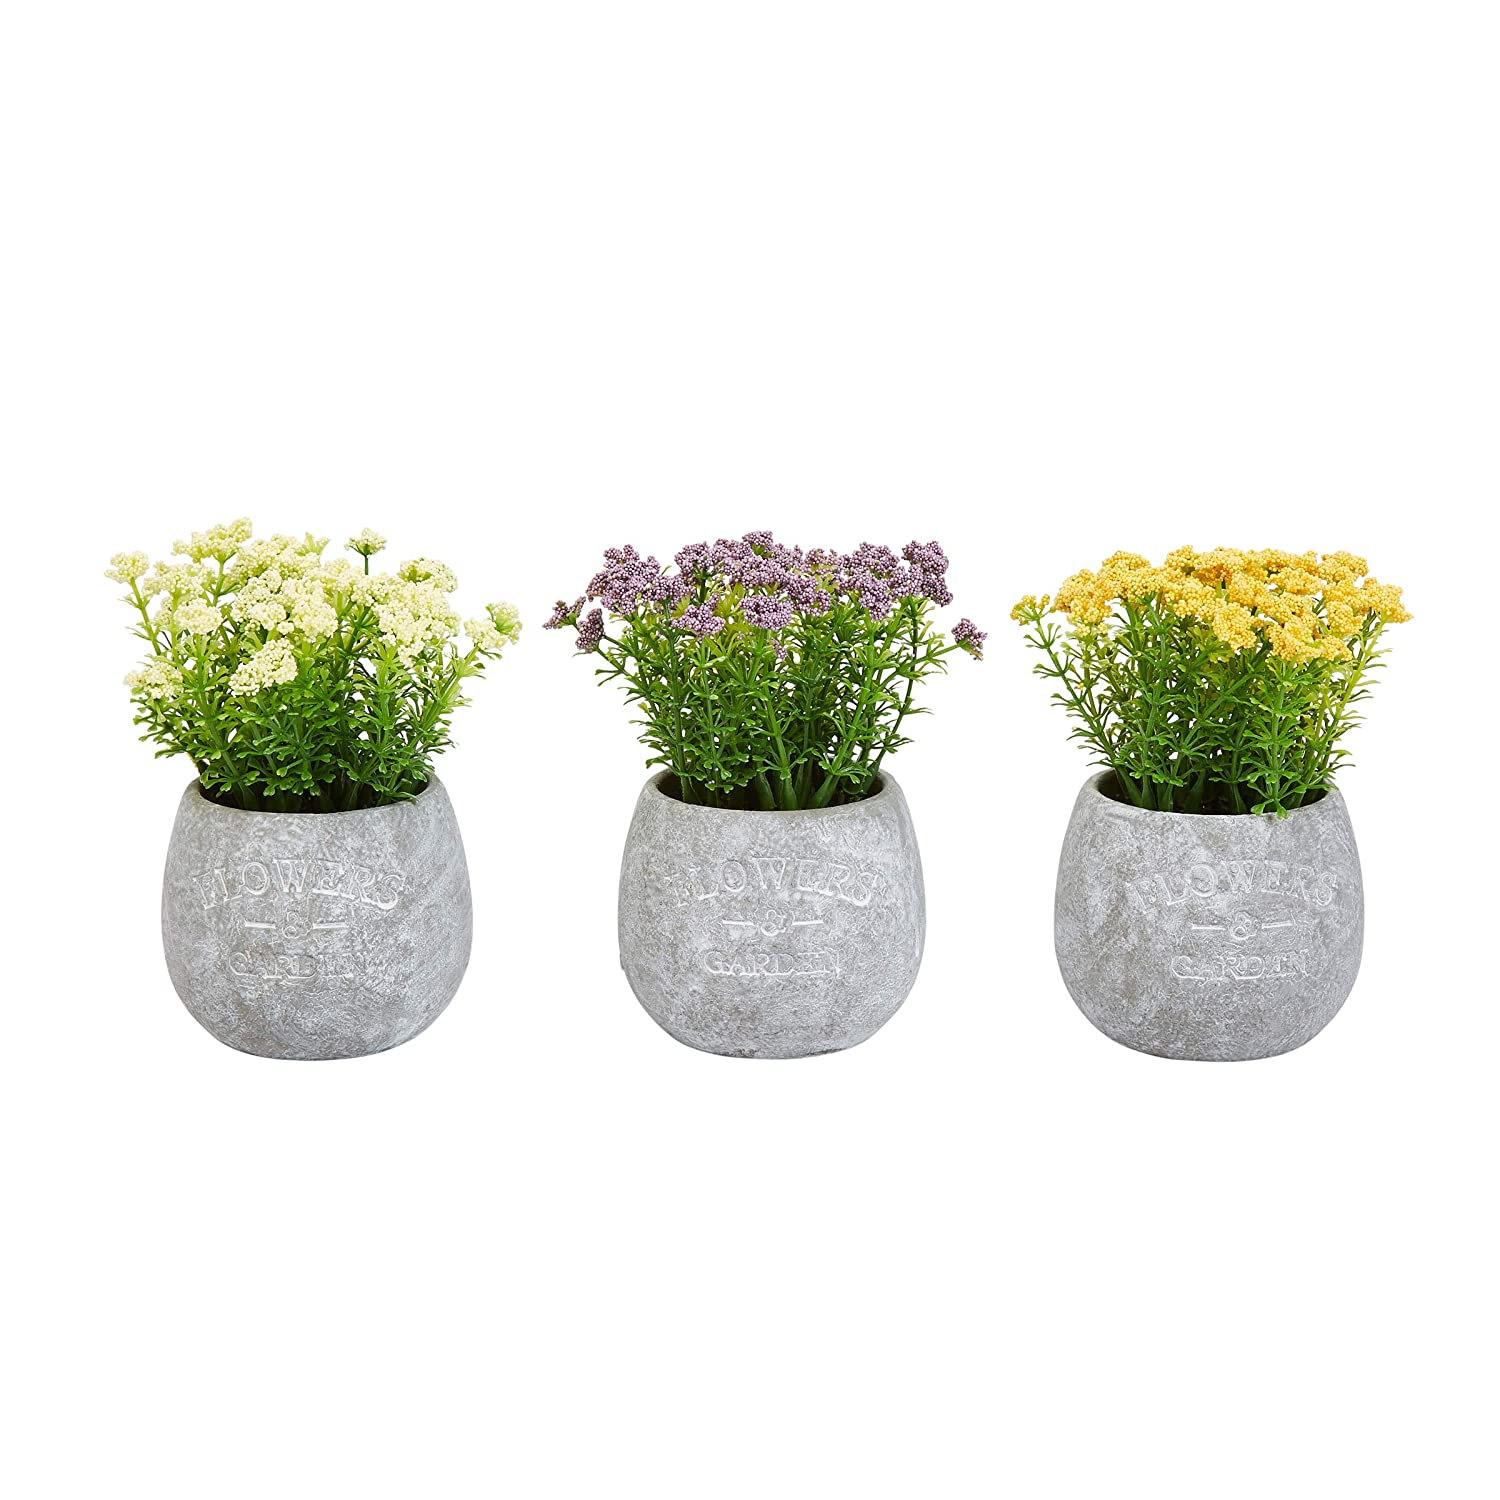 """Pure Garden Faux Flowers-3-Piece Assorted Natural Lifelike Floral 6.25"""" Tall Arrangements and Imitation Greenery in Vases for Home or Office Décor"""